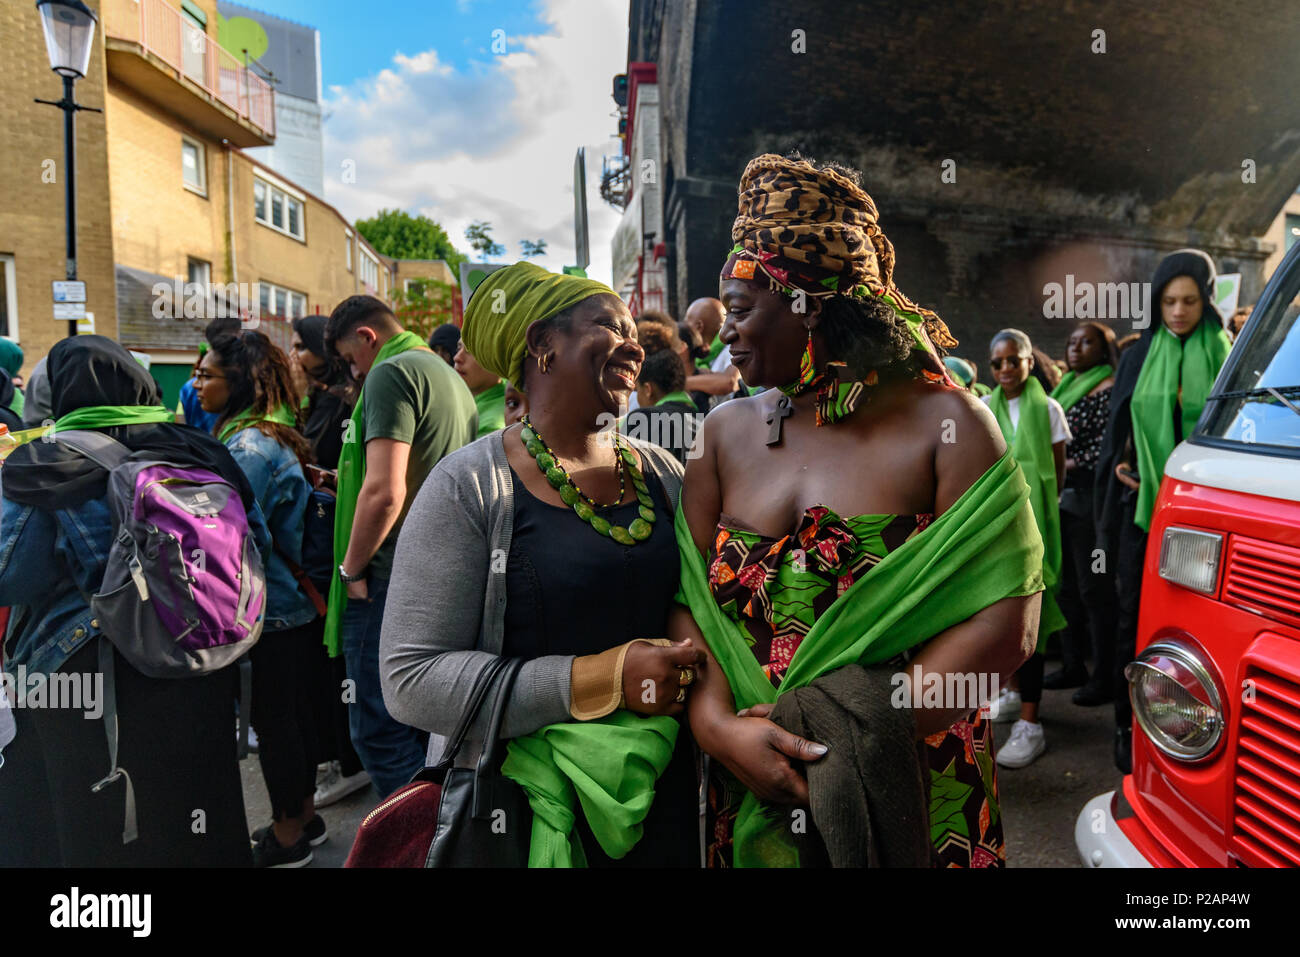 London, UK. 14th June 2018. Two women share a joke as they wait with housands to walk in silence from close to Grenfell Tower remembering the victims of the disaster on the first anniversary of the disastrous fire which killed 72 and left survivors traumatised. Many of those made homeless by the fire are still in temporary accomodation a year later despite promises mde by Theresa May and Kensington & Chelsea council, who many fell have failed the local community both before and after the fire.  call for justic Credit: Peter Marshall/Alamy Live News - Stock Image